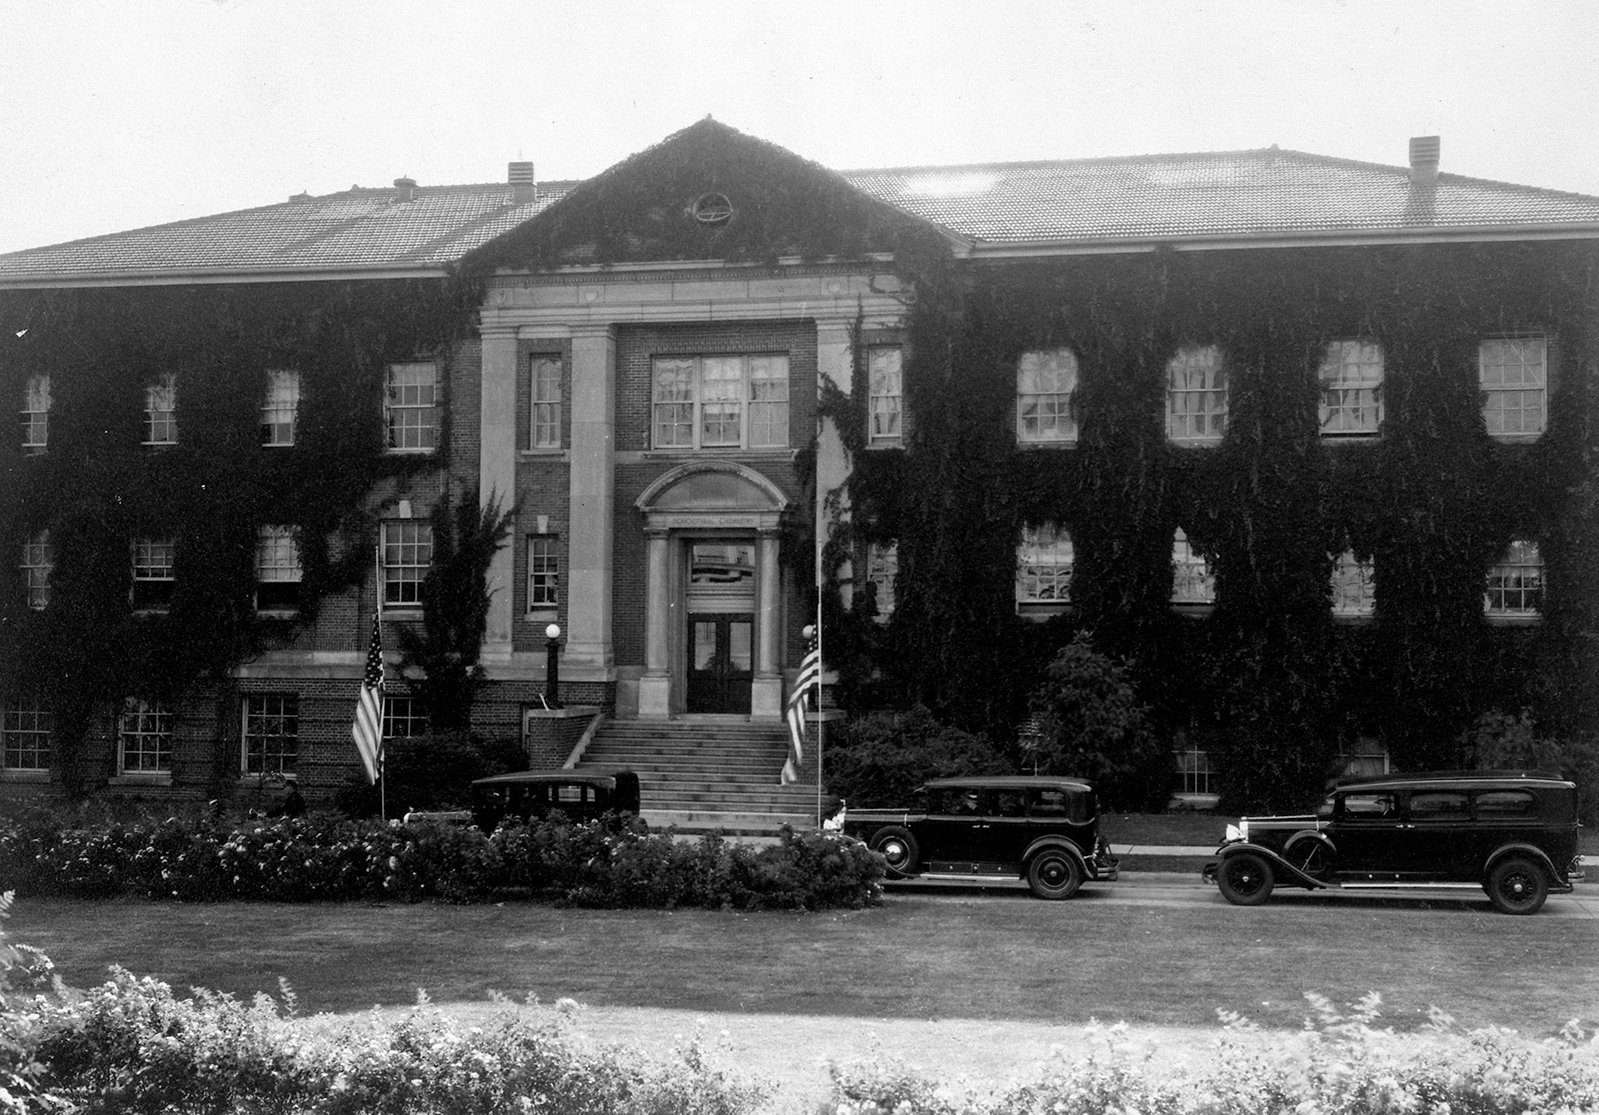 Old photo of a university building